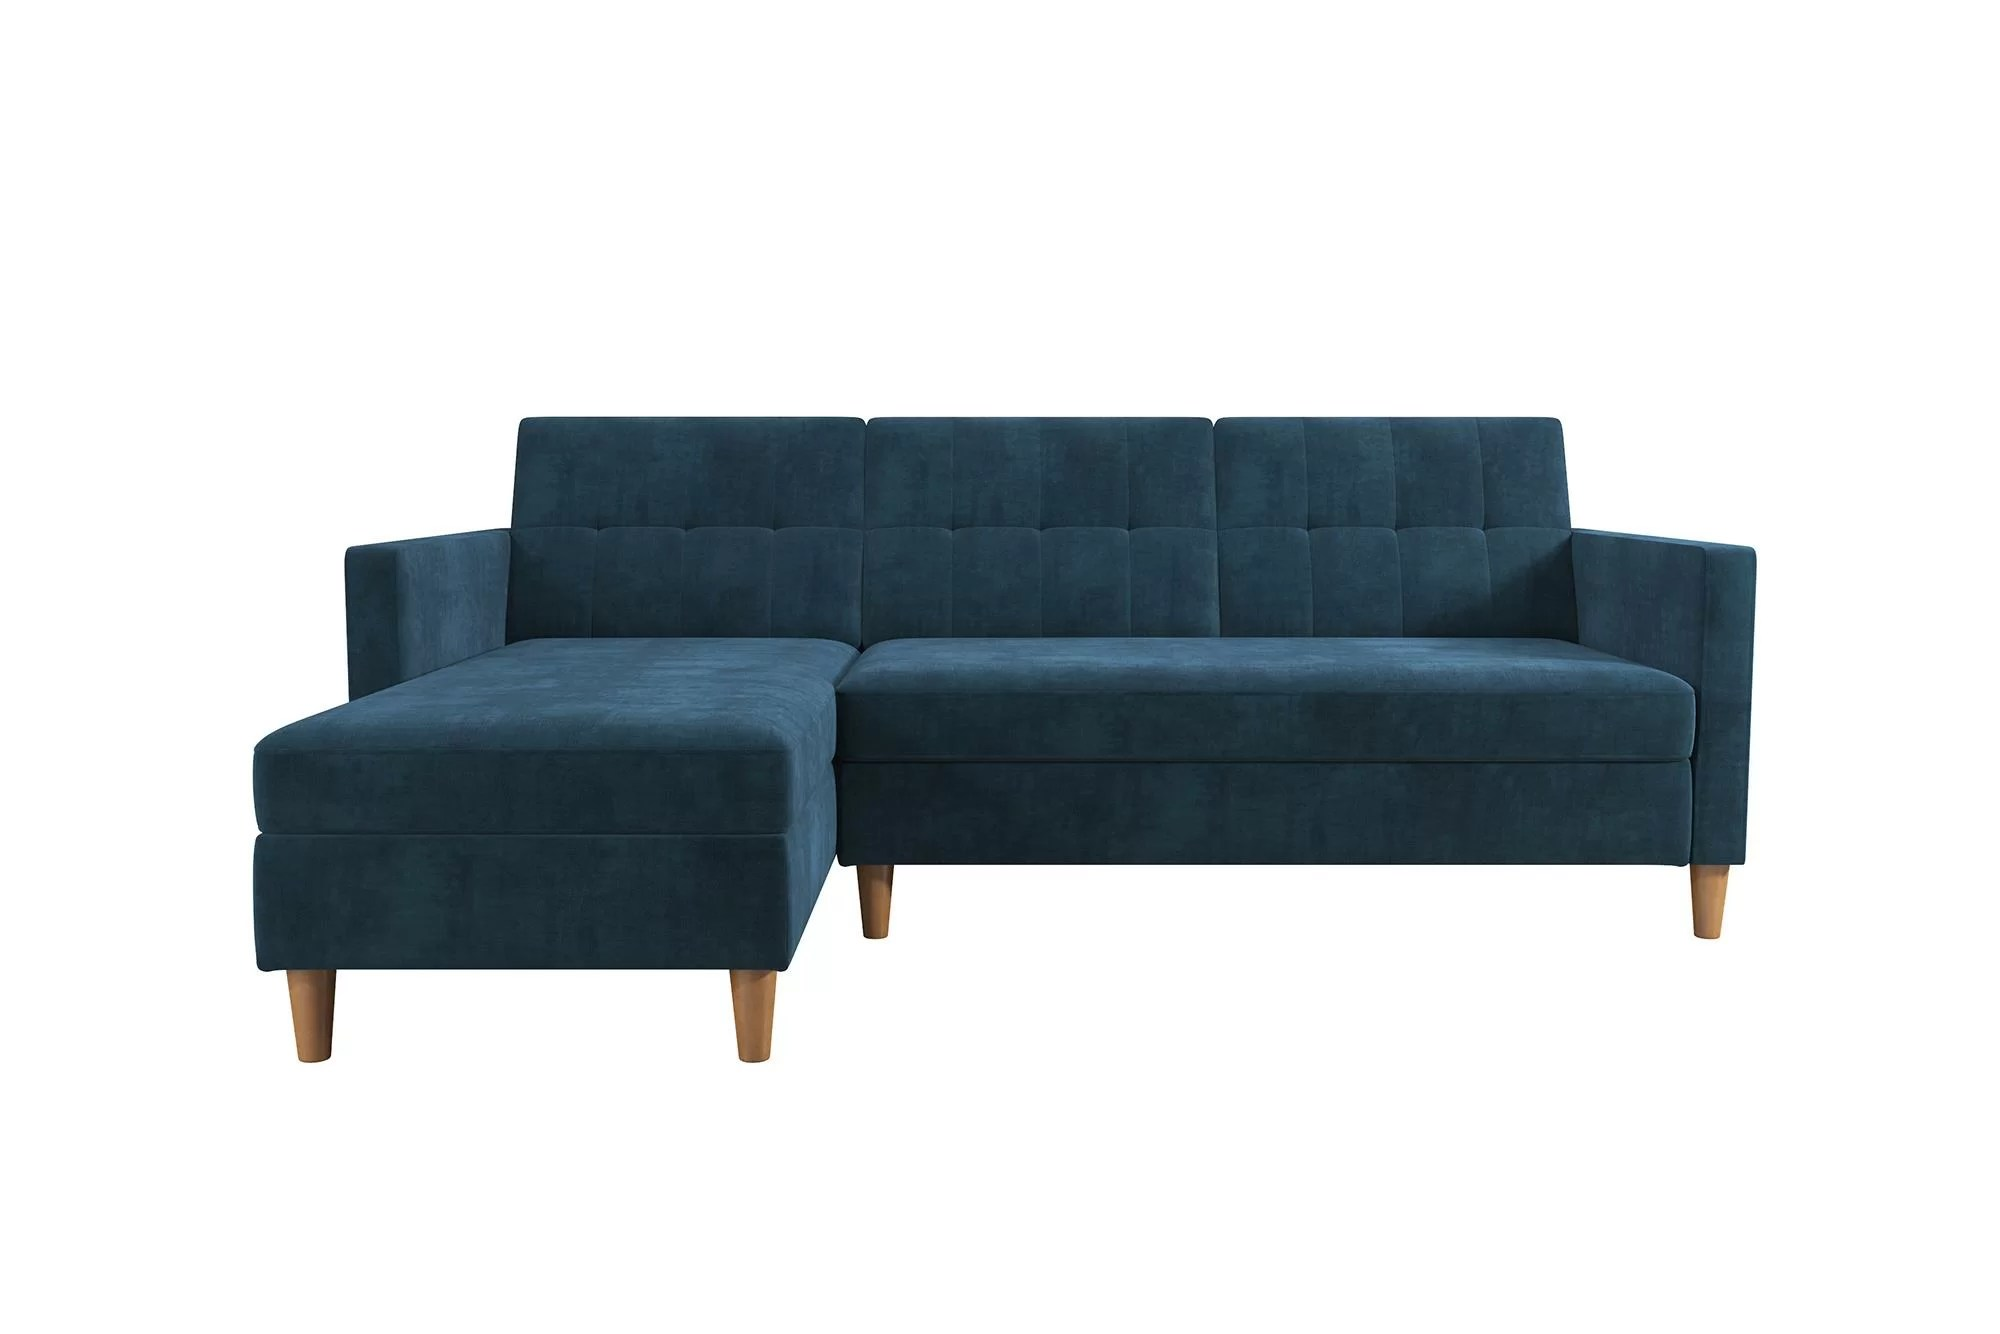 Sofa Open Box Modern Sectional Sofas Allmodern